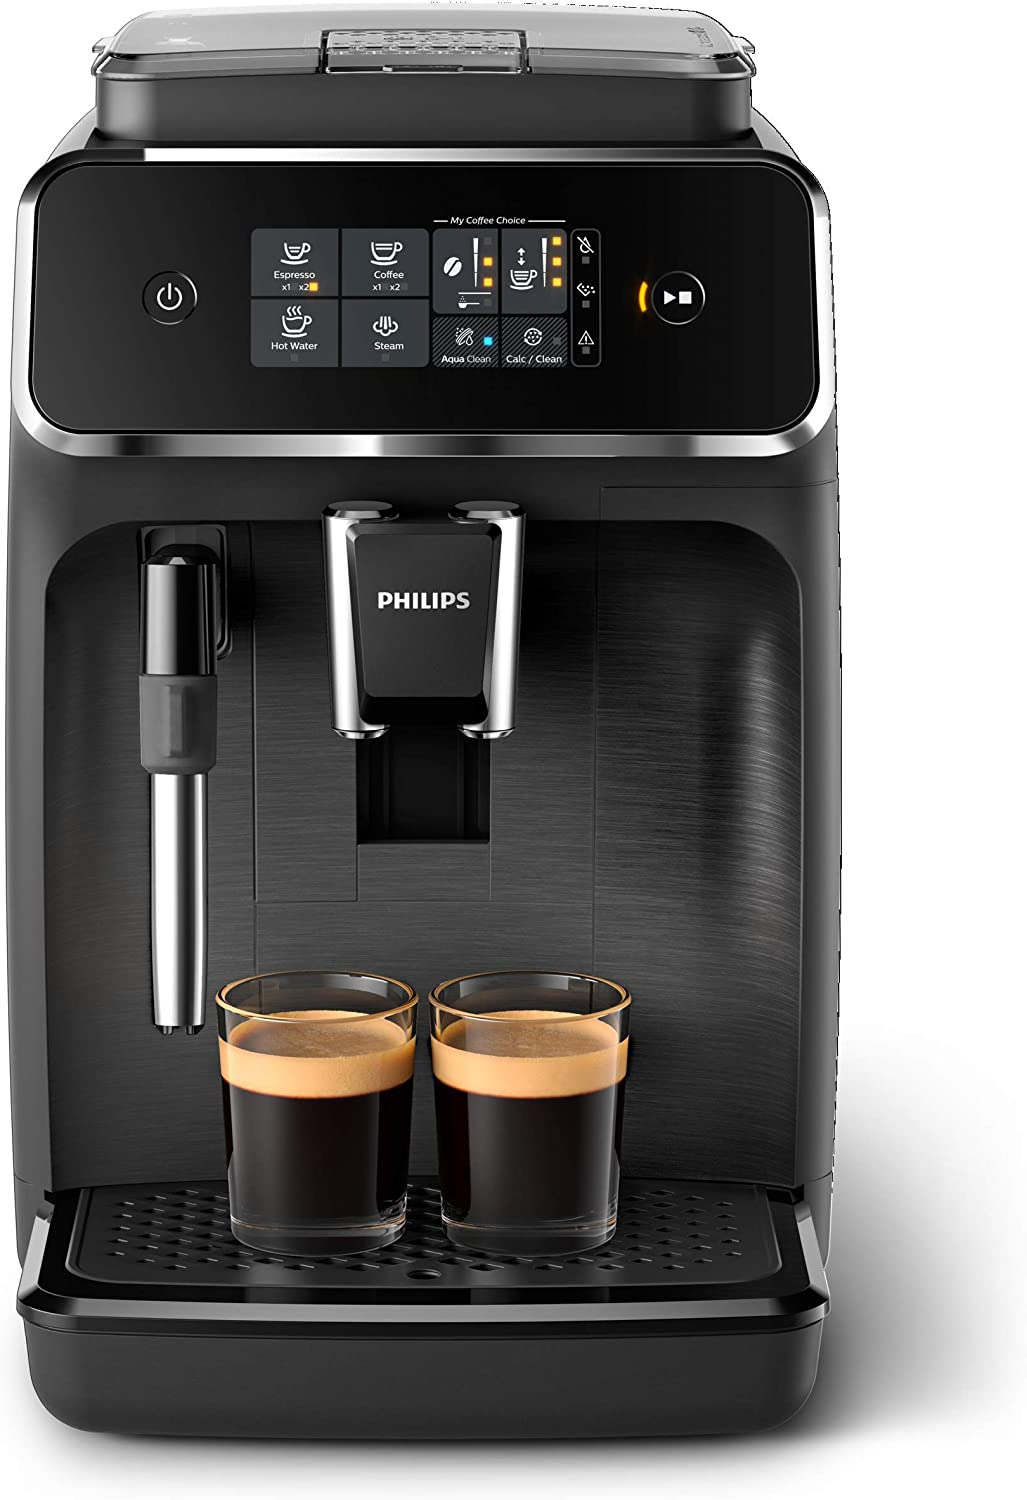 Philips EP2220/10 Cafetera superautomática, Acero Inoxidable, Negro Mate: Amazon.es: Hogar